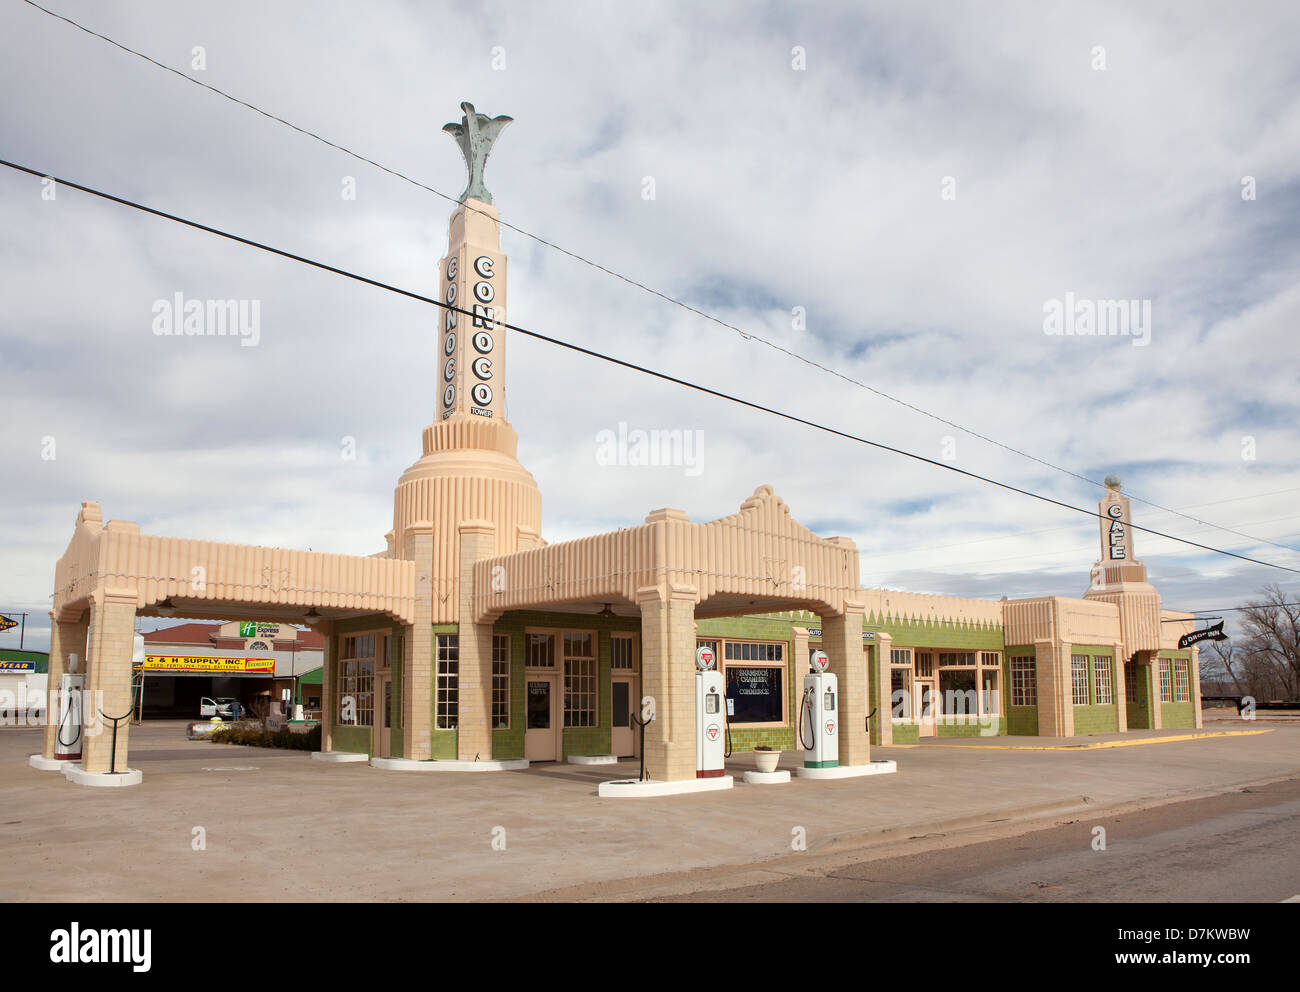 The recently restored U-Drop Inn/Tower Conoco Gas Station on Historic Route 66 in Shamrock, Texas, USA. Stock Photo